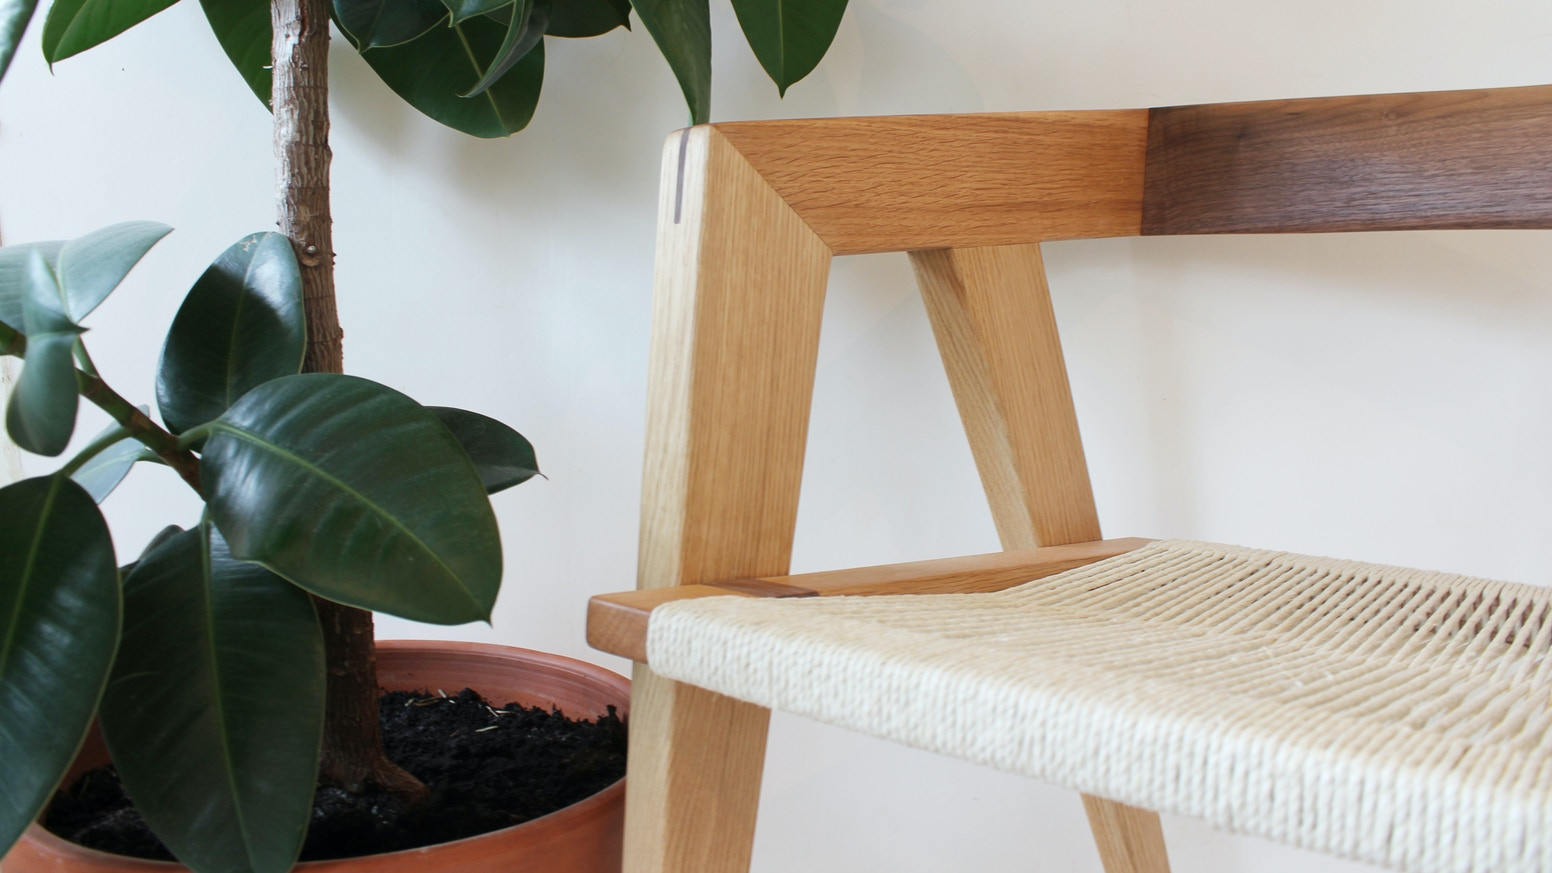 5 pieces of minimal, functional furniture design, handcrafted with traditional woodworking techniques.